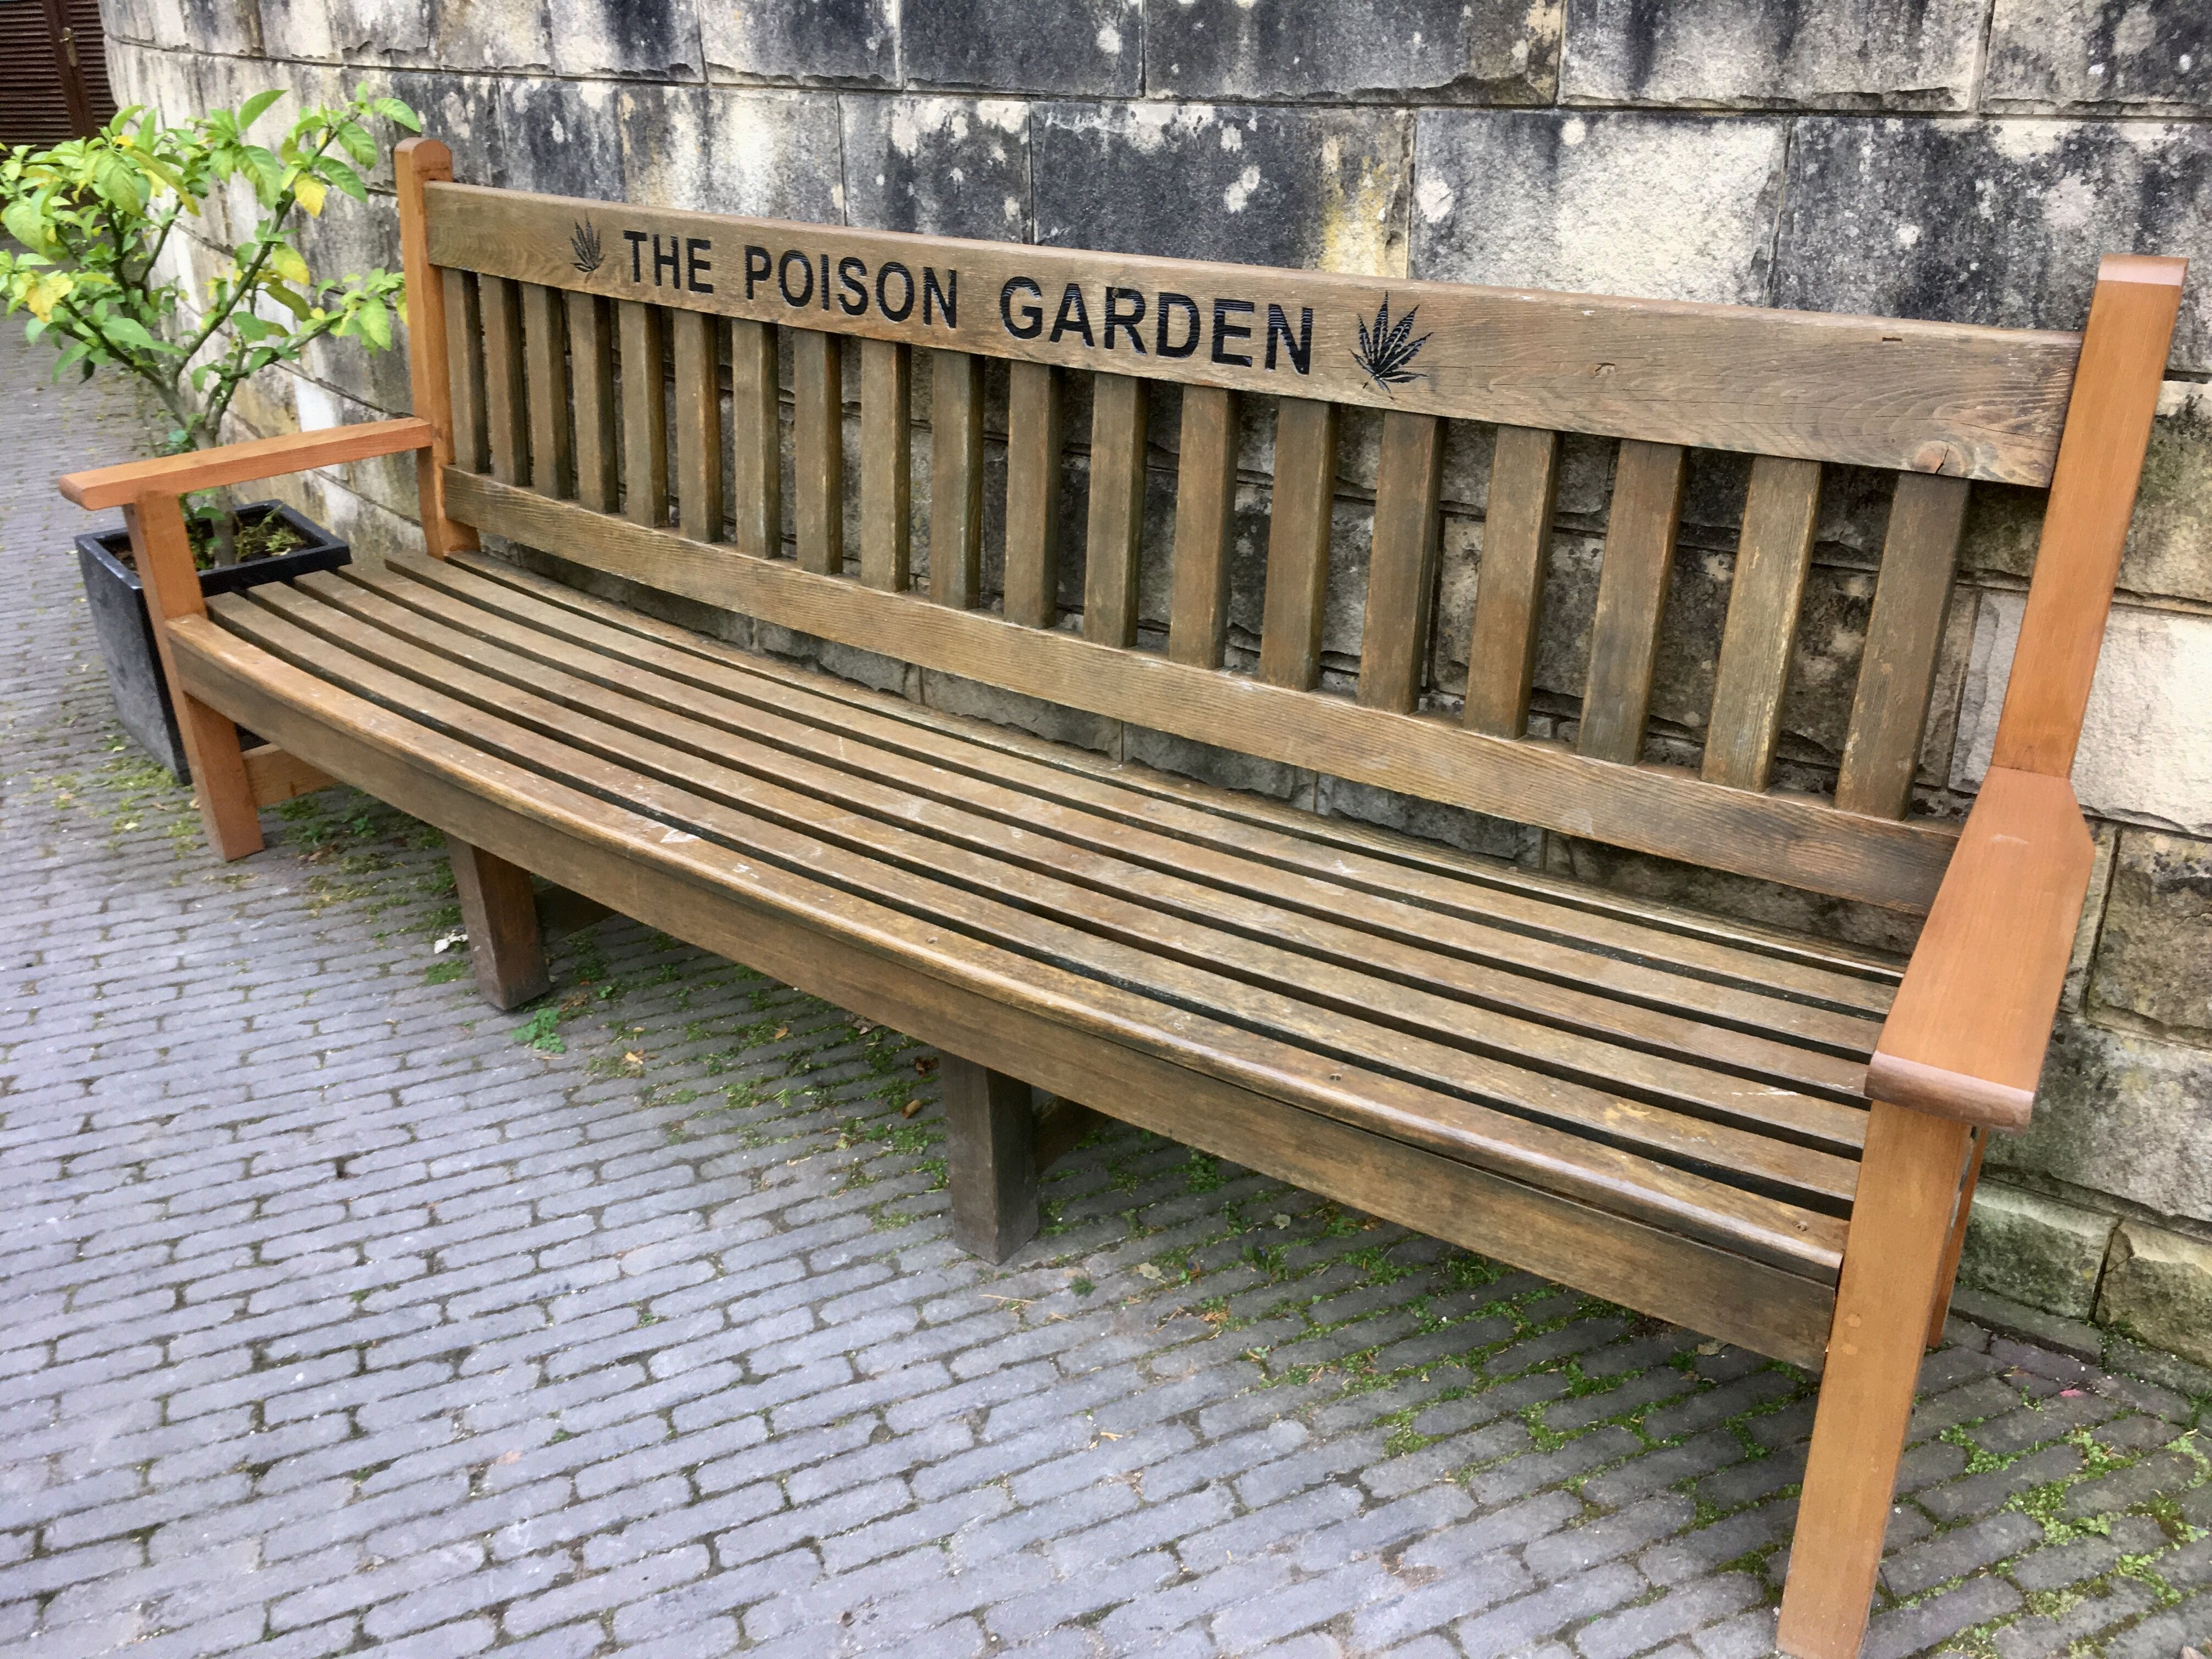 Garden bench in the poison garden at Alnwick Castle, Northumberland ...